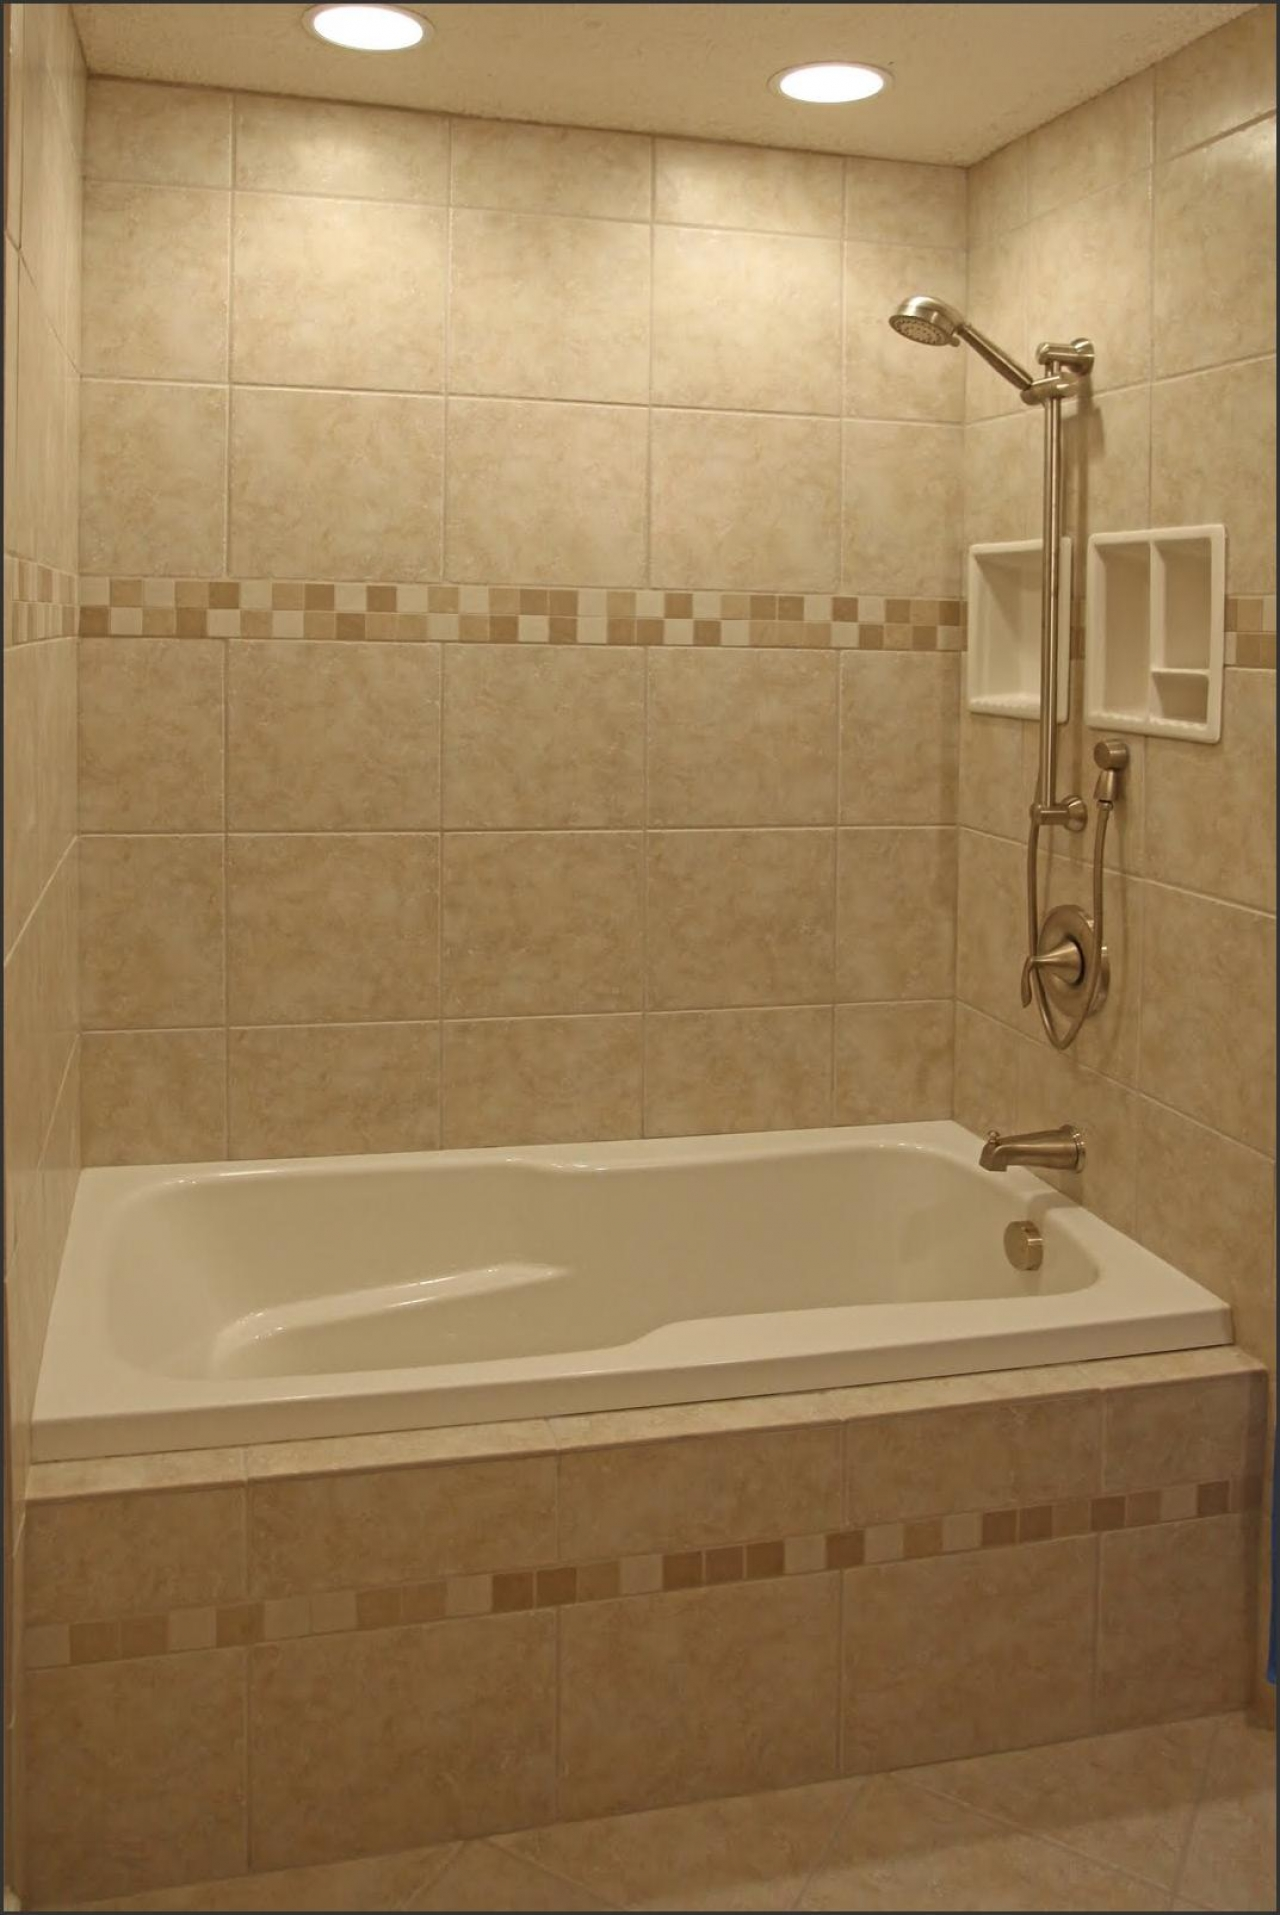 37 great ideas and pictures of modern small bathroom tiles Bathroom shower tile designs